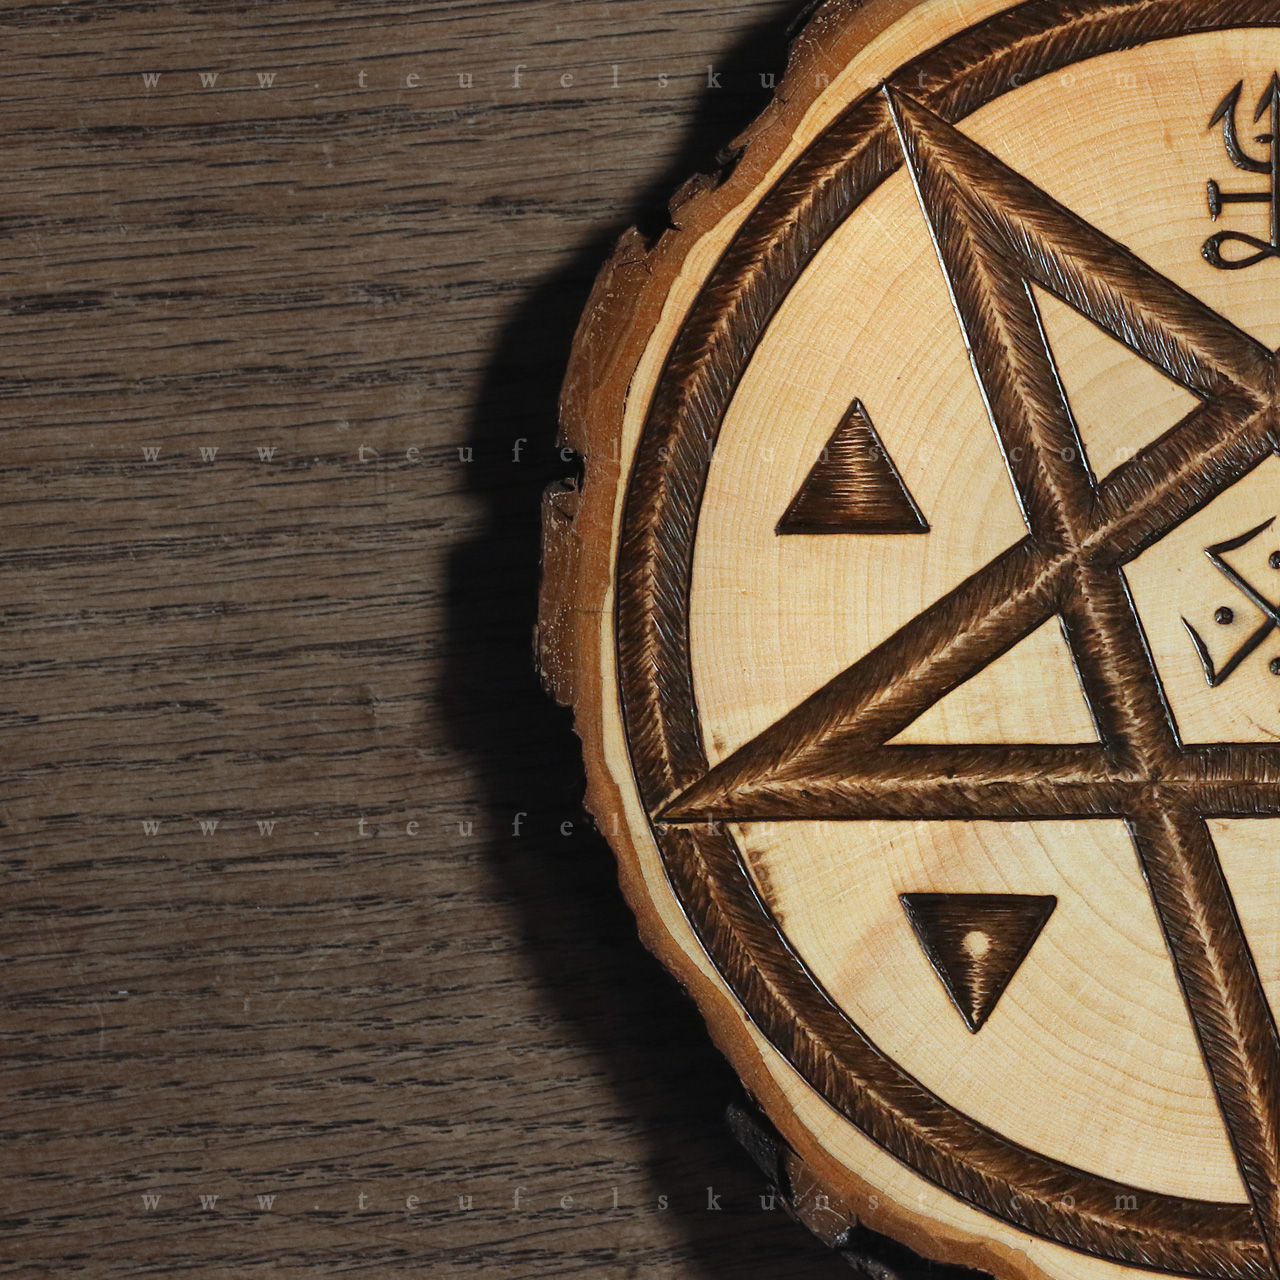 Black Alder Pentagram disc